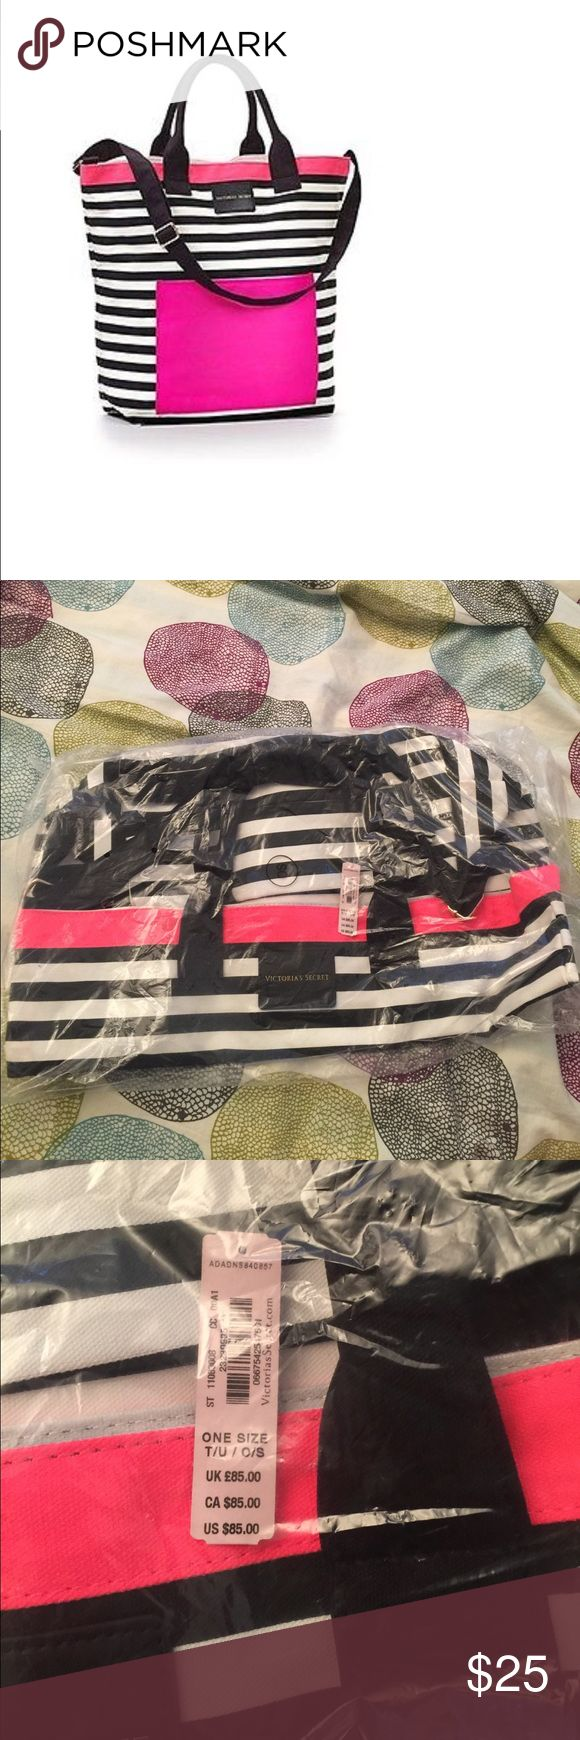 Victoria's Secret Striped Tote NWT Brand new with tags and in packaging Victoria's Secret striped tote!  This big tote is perfect for a trip to the beach since the inside has a water resistant coating! Bundle to save! Victoria's Secret Bags Totes